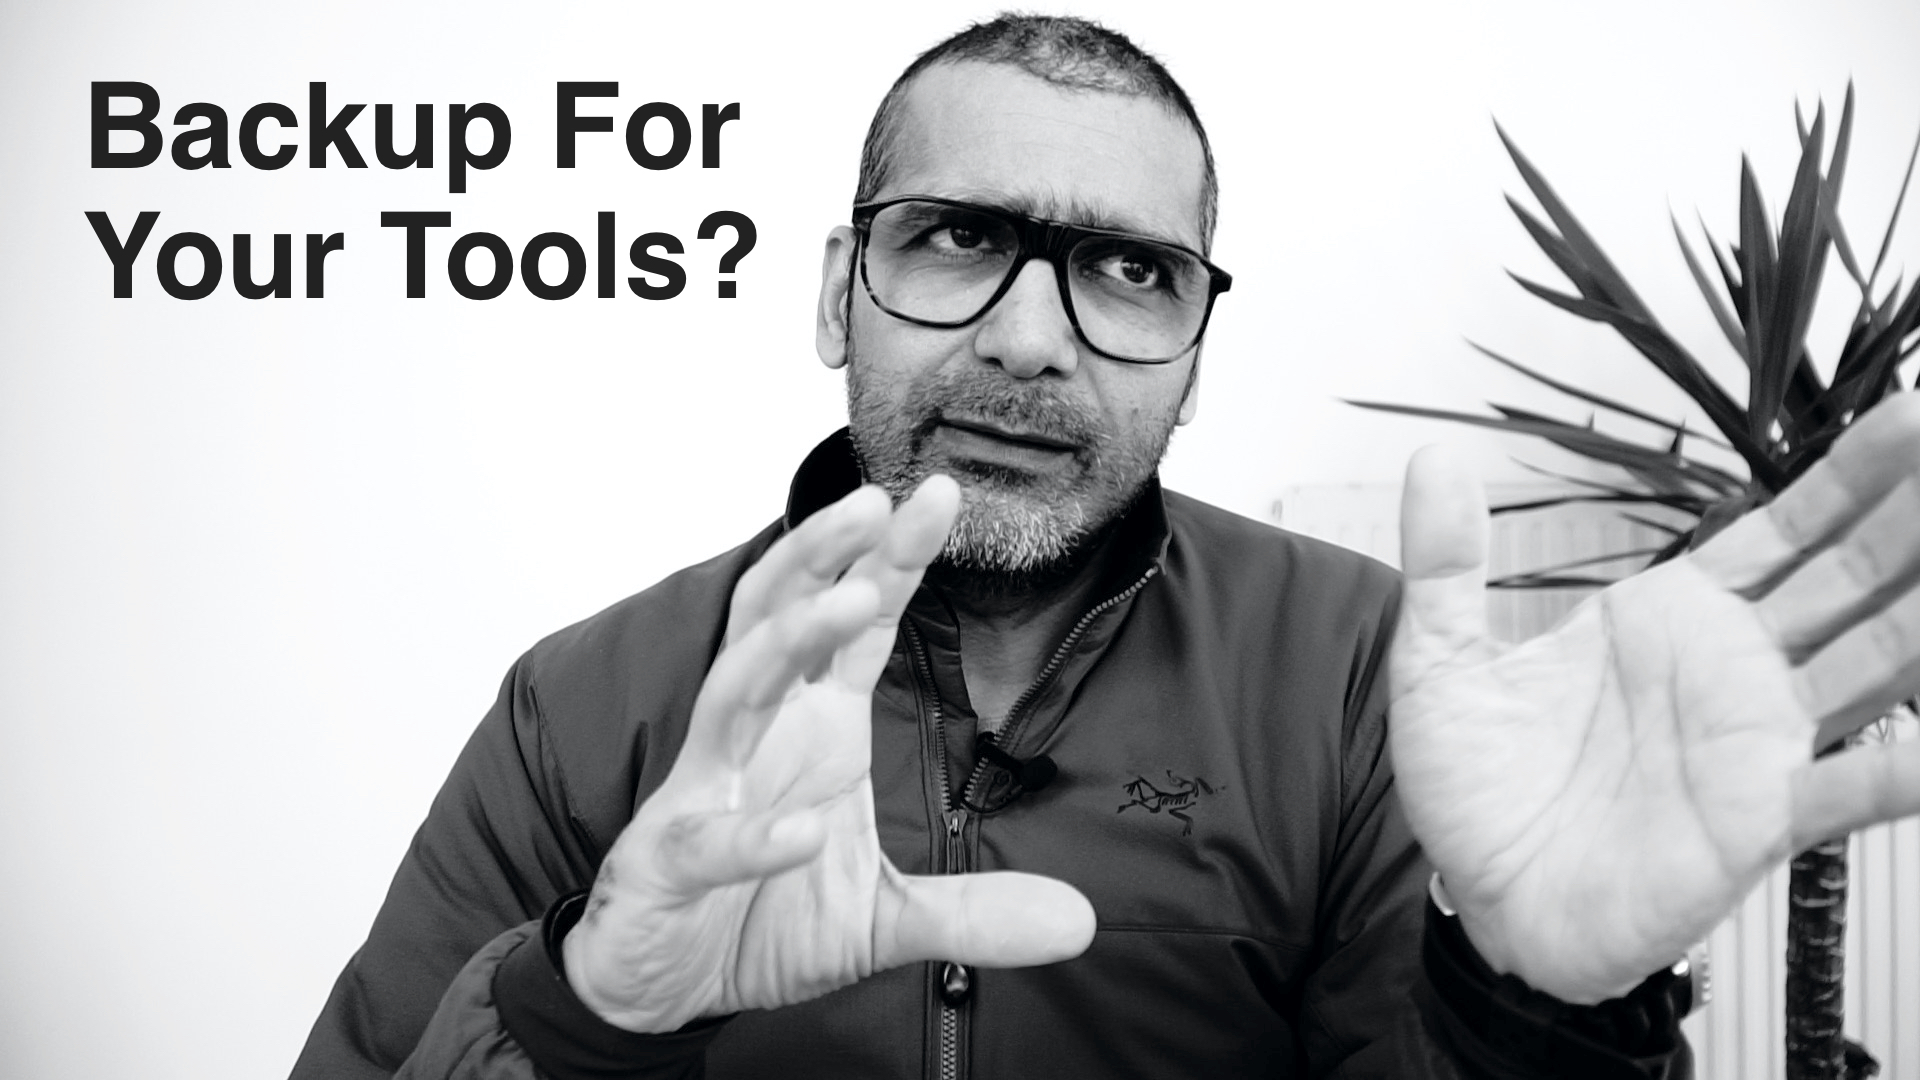 Do You Have Back Up Tools?